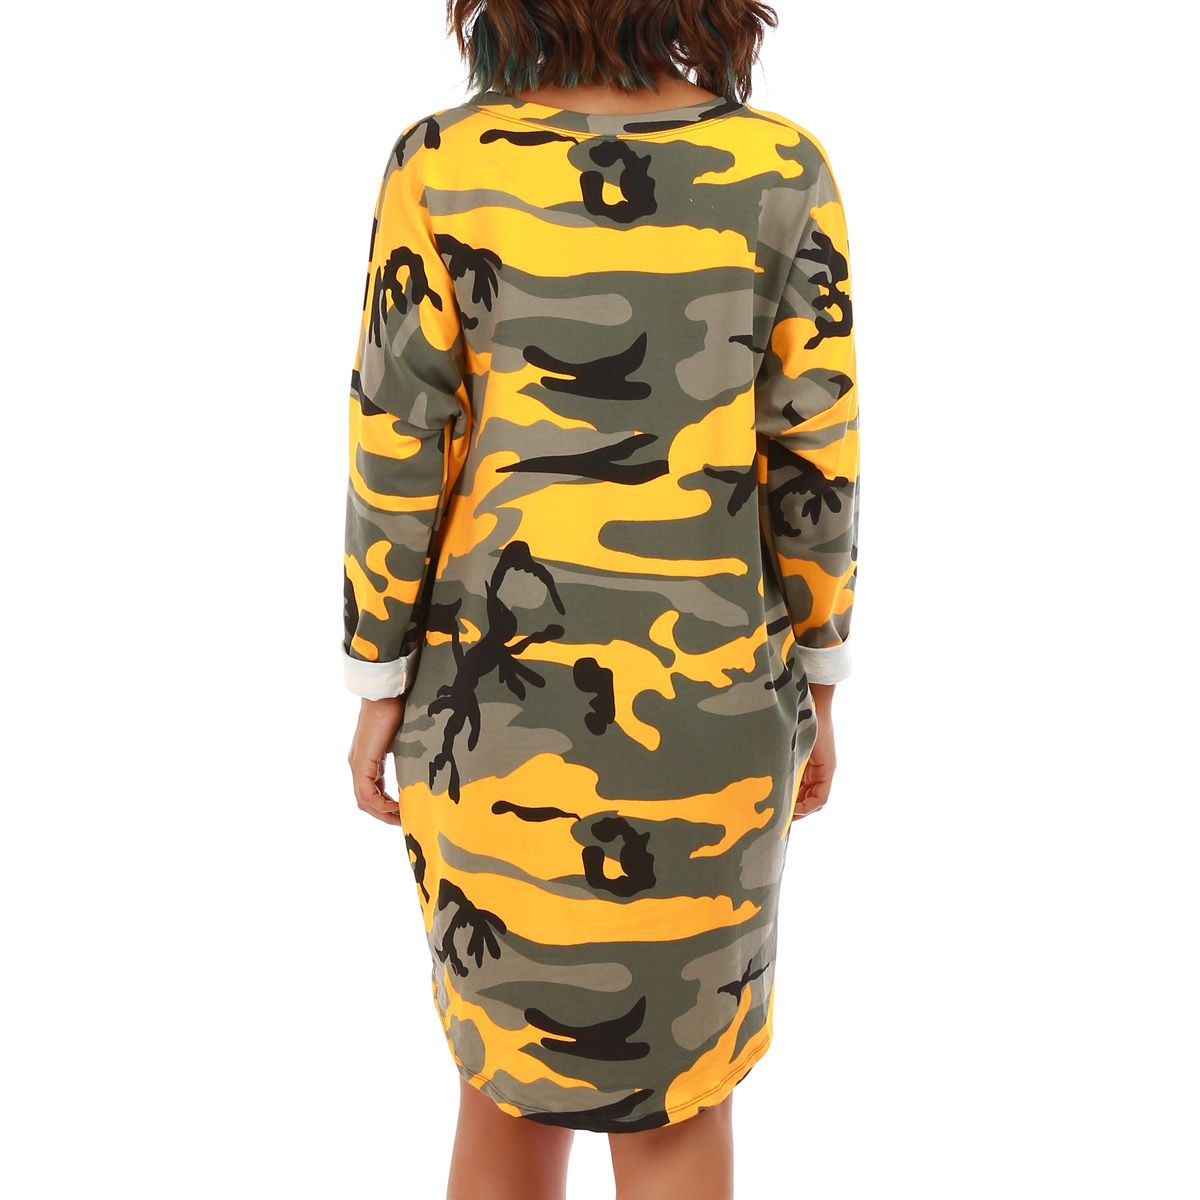 Robe sweat camouflage kaki